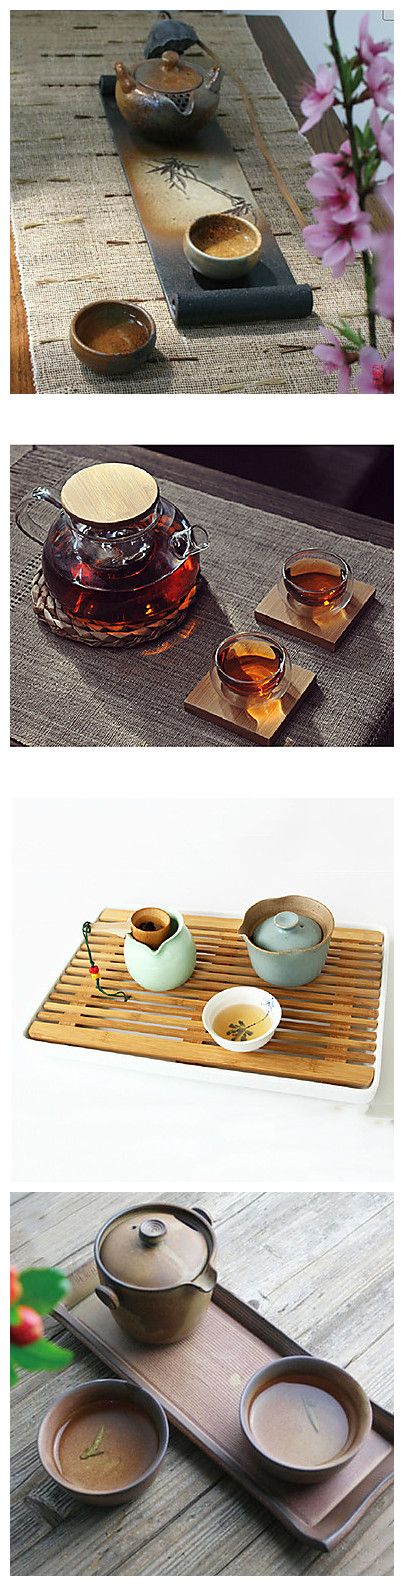 Traditional tea sets serve as both decoration and a way to enjoy your afternoon tea. Choose your style today.